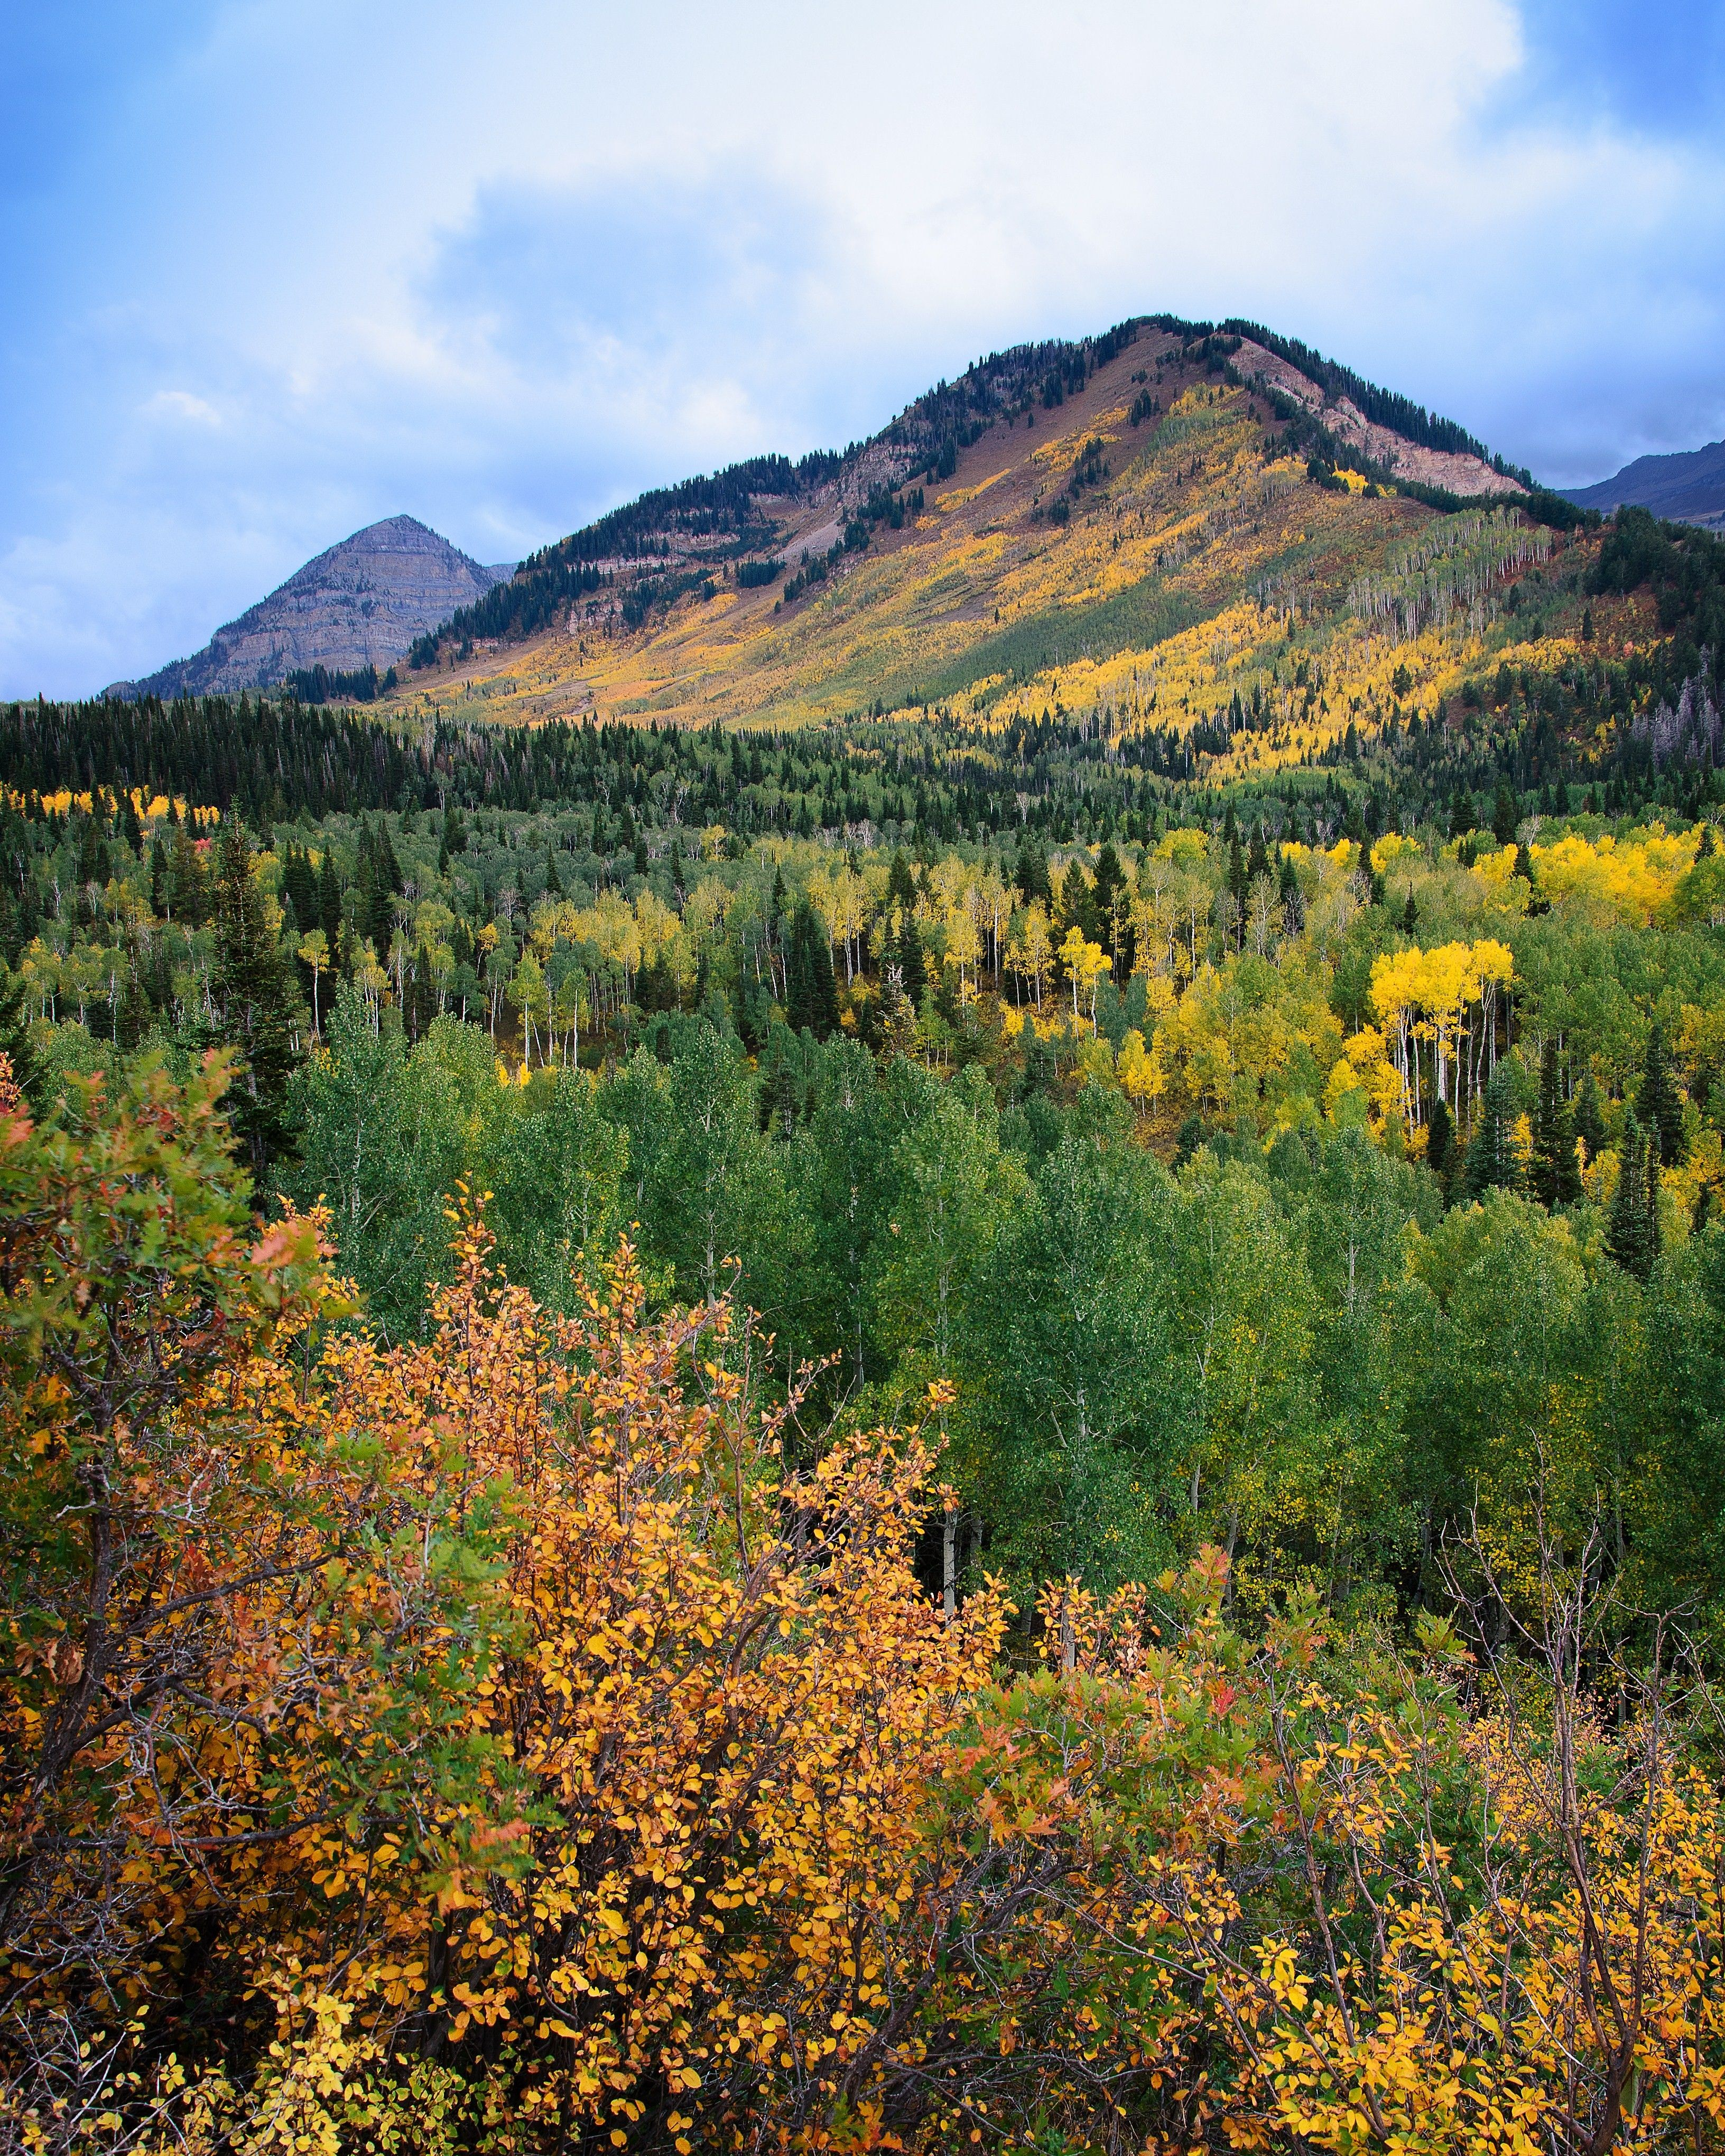 A mountain scene with yellow trees scattered throughout the forest.